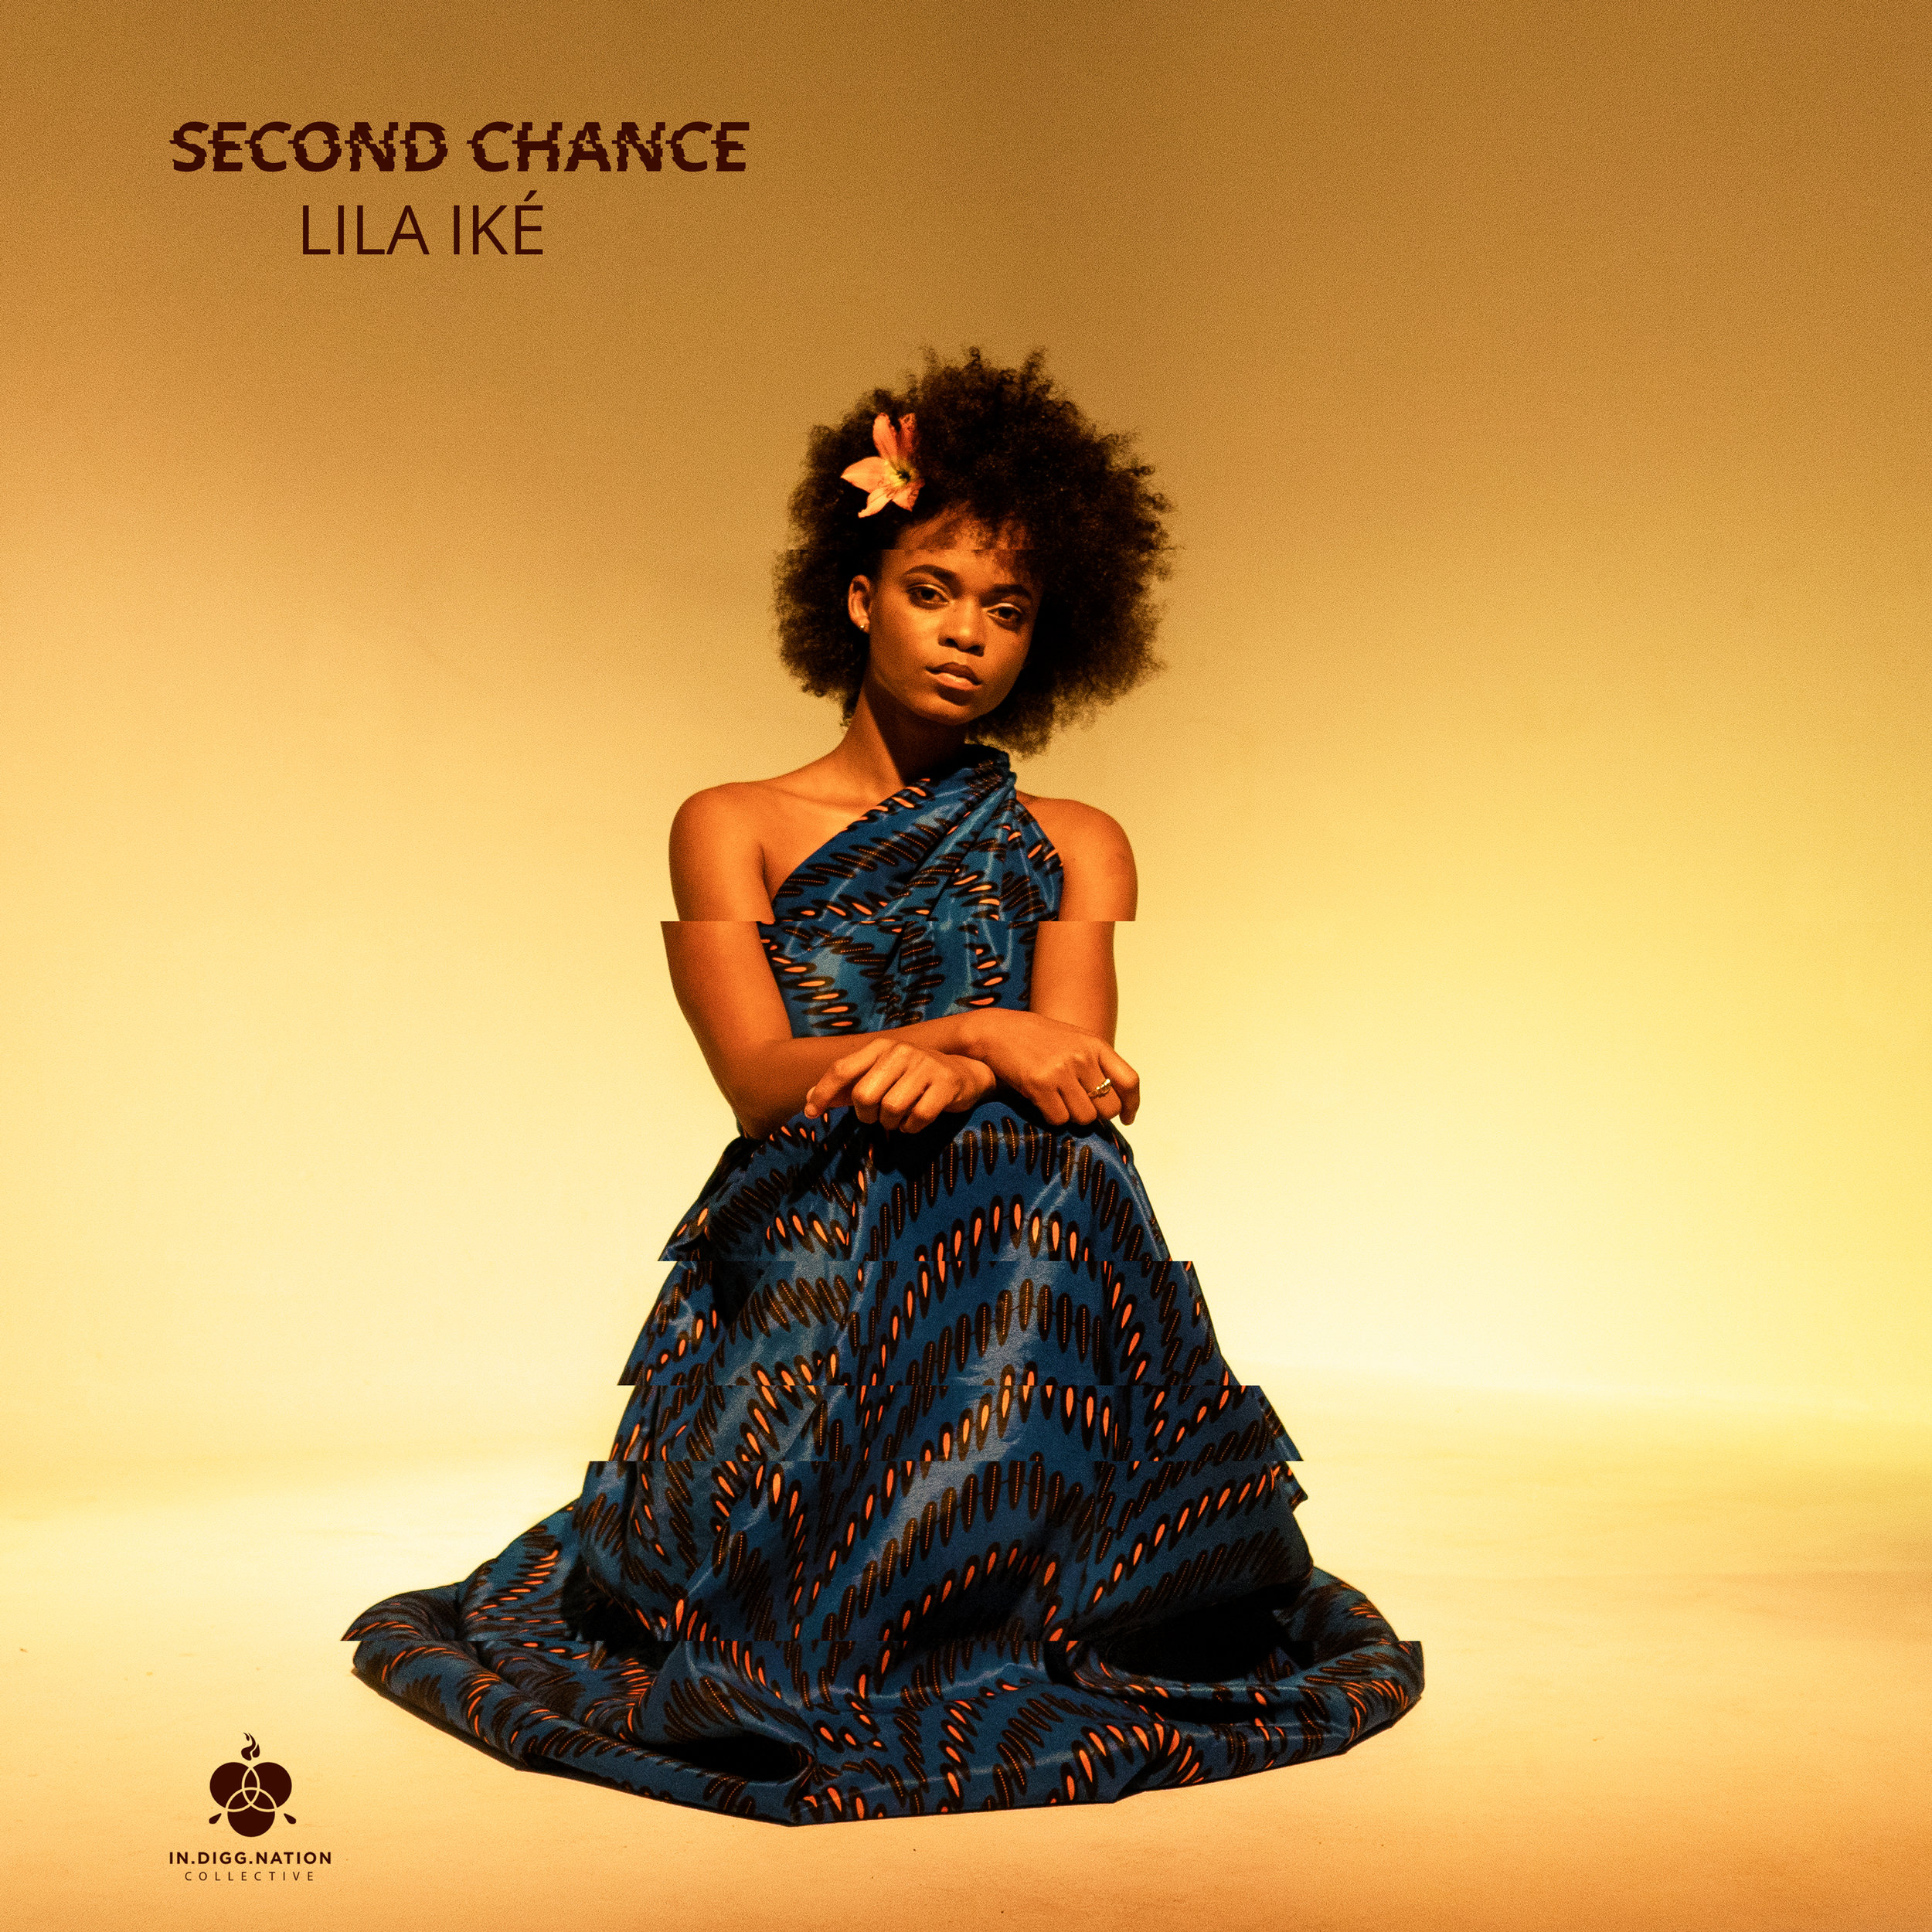 SECOND-CHANCE-cover.-3000x3000px.jpg